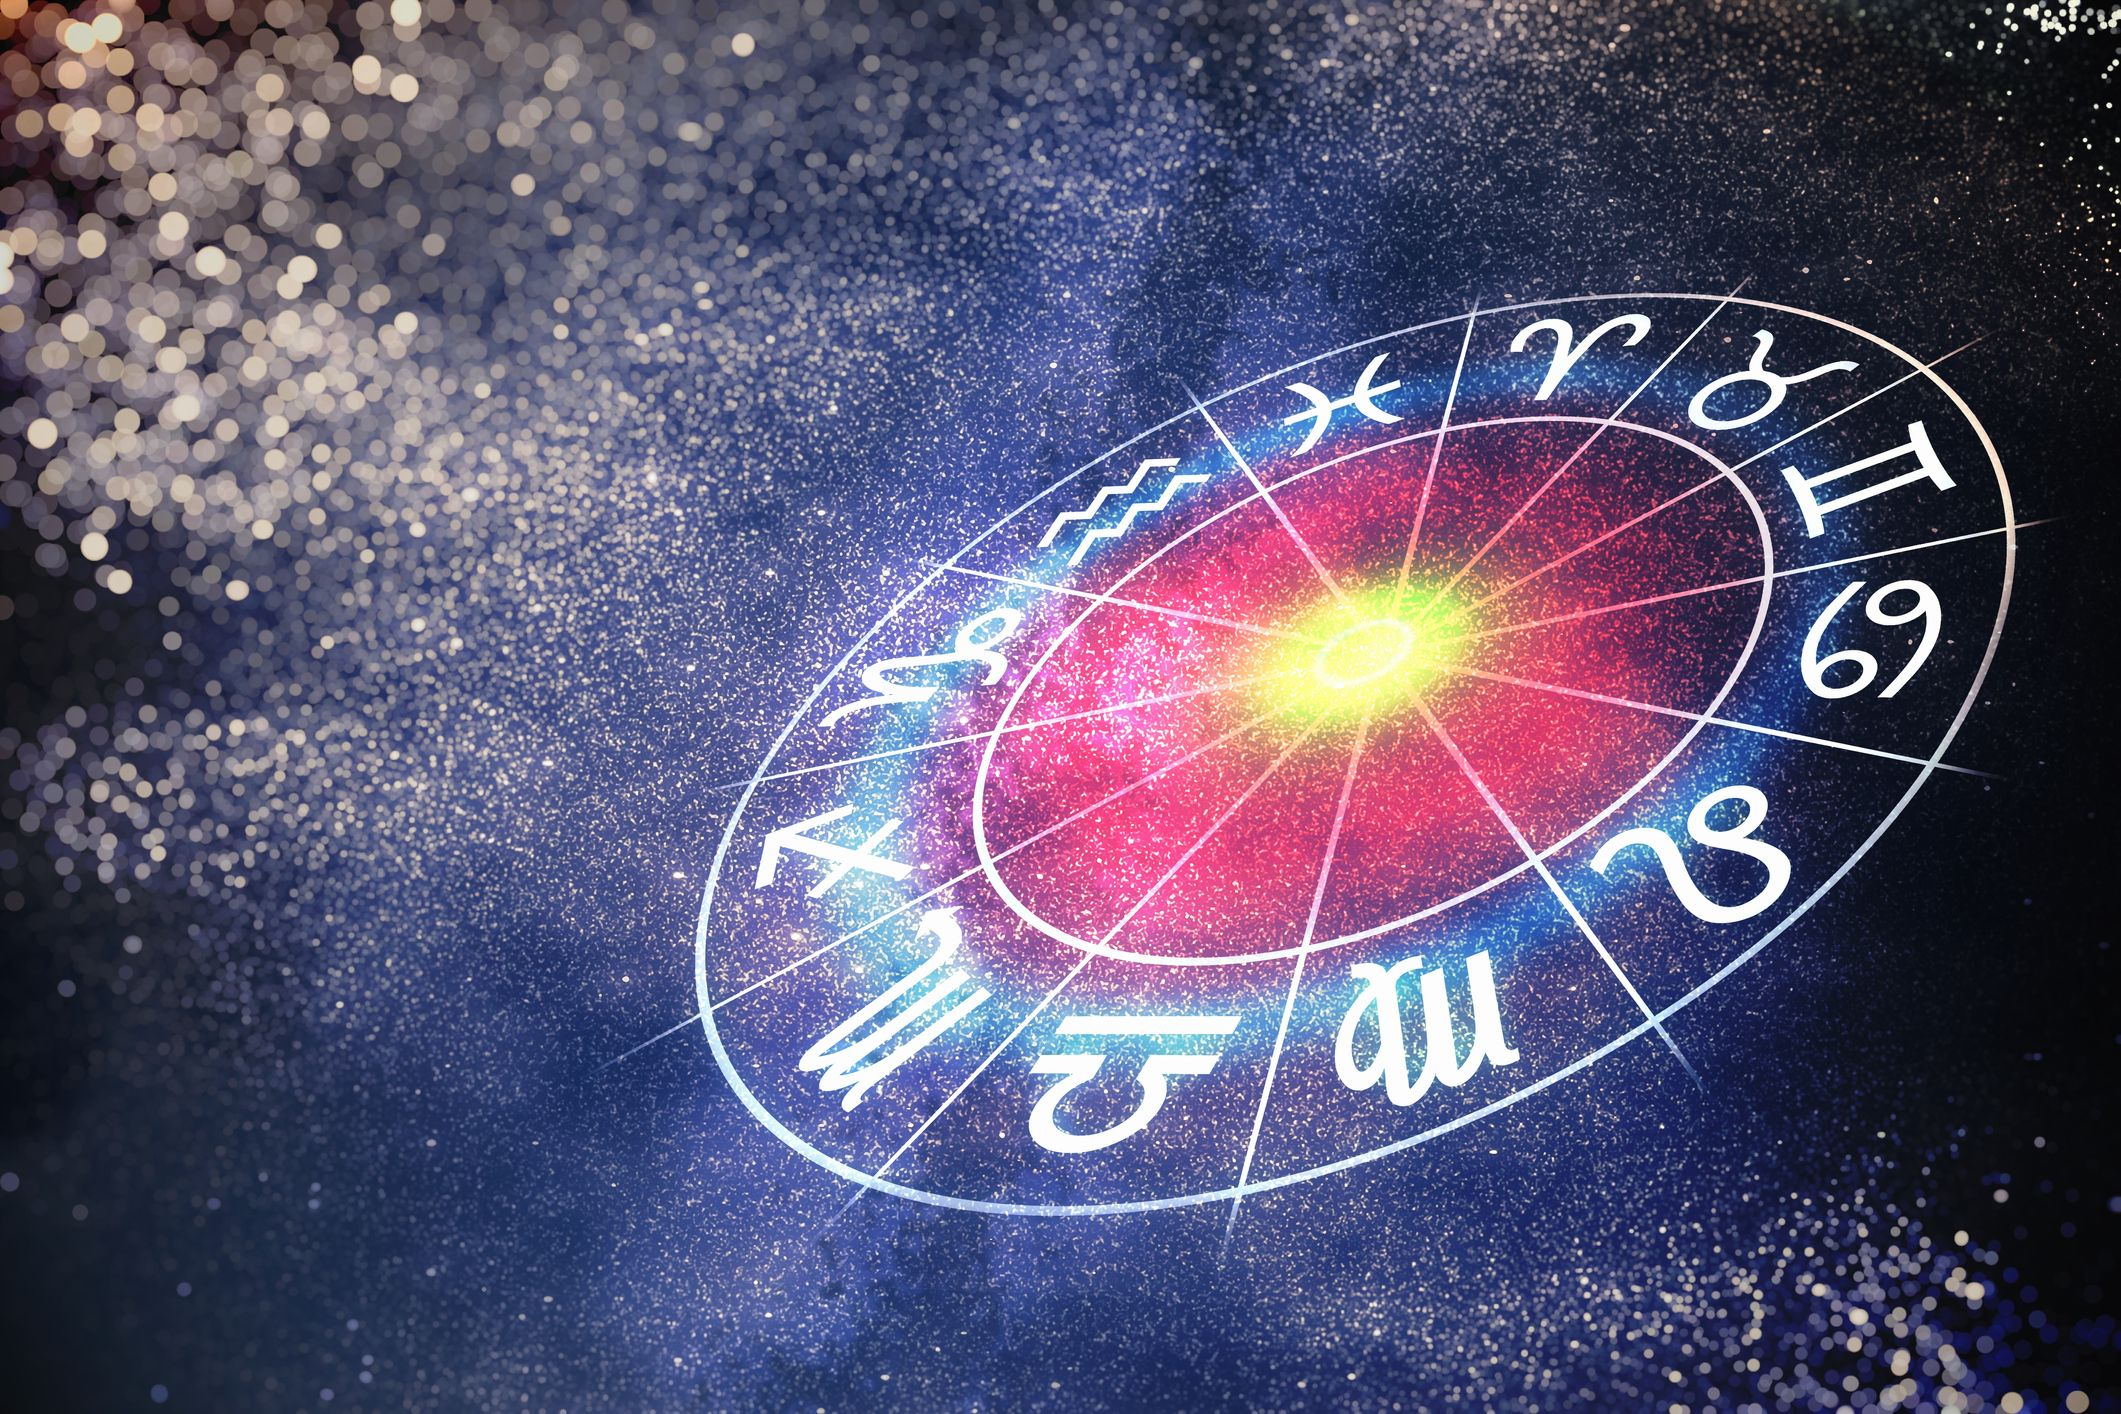 January 29 Astrological Sign